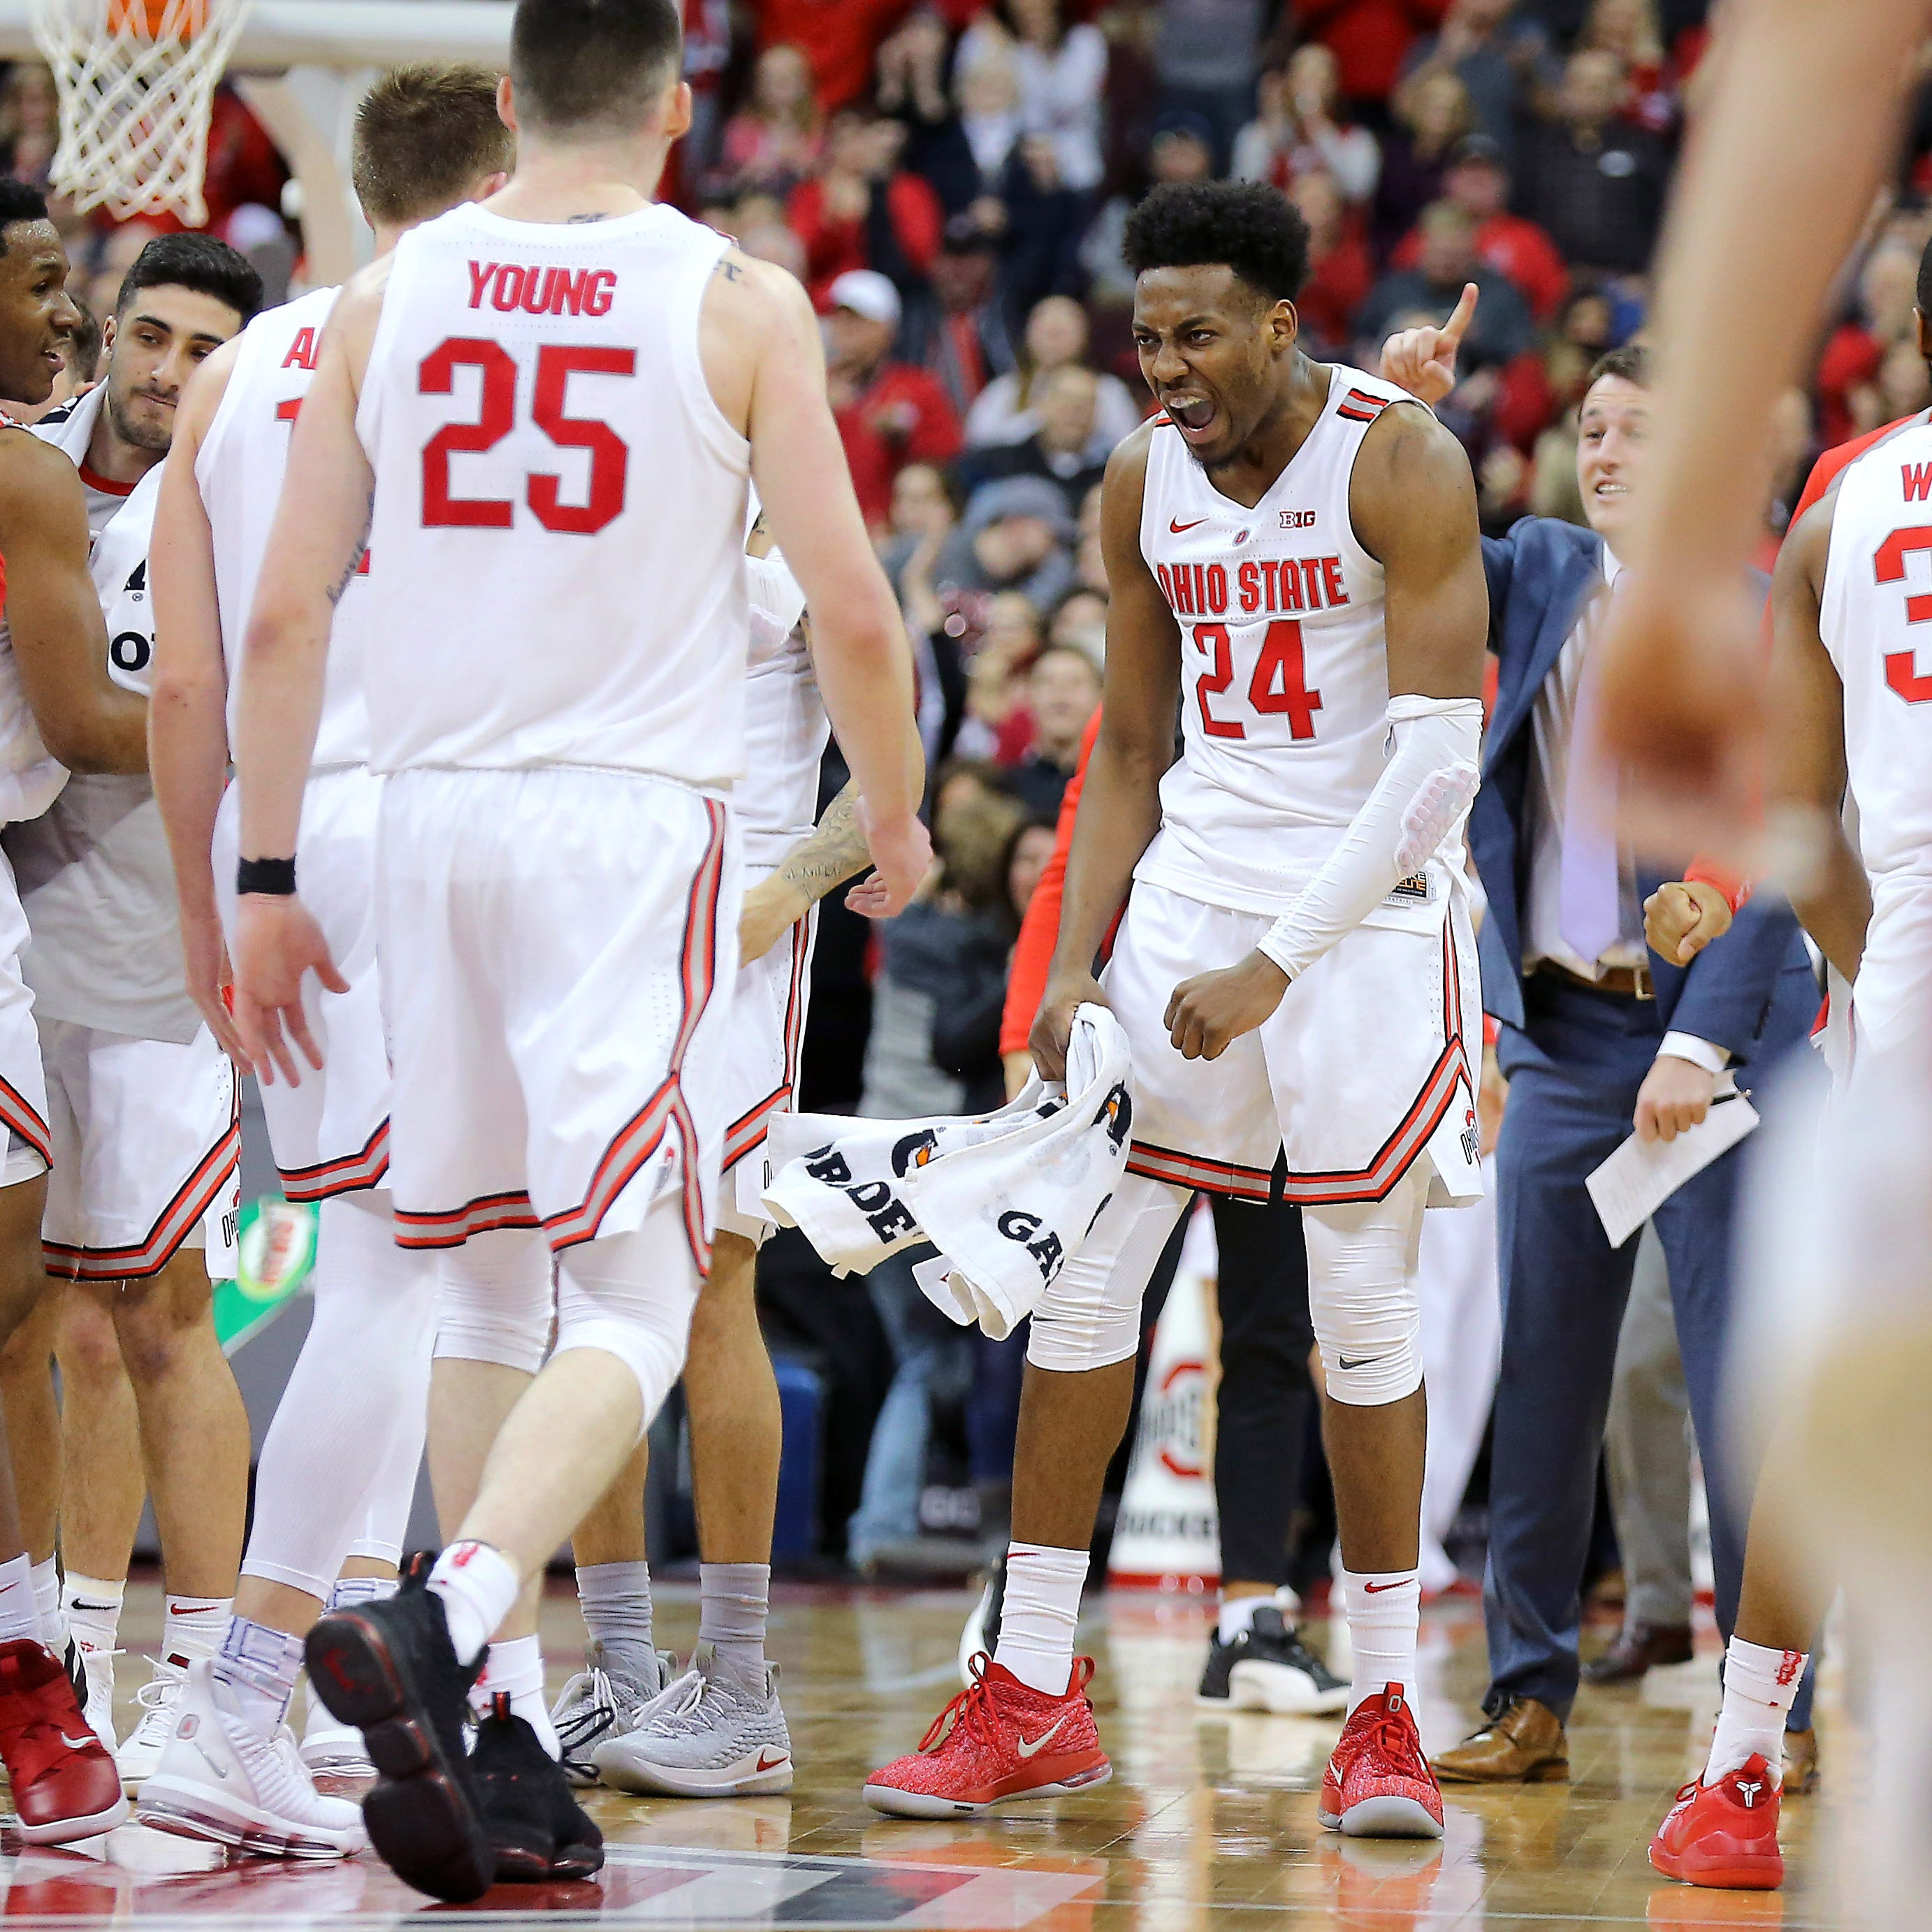 McCurdy: Buckeyes feeling better heading into Big Ten Tournament